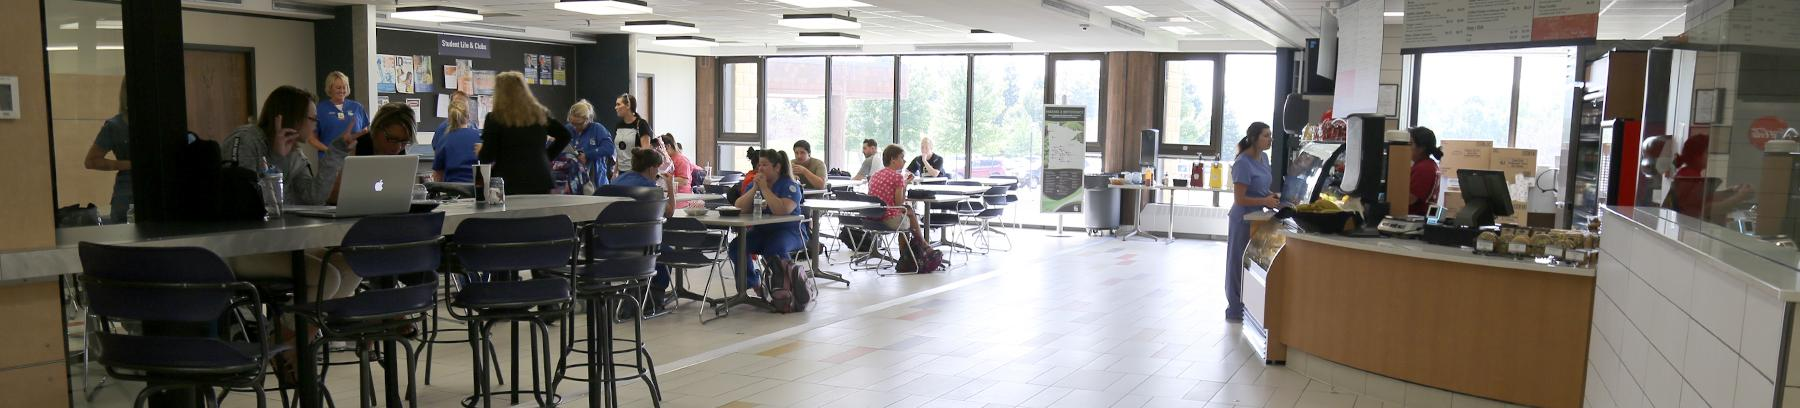 Students and faculty in the East Campus cafeteria.